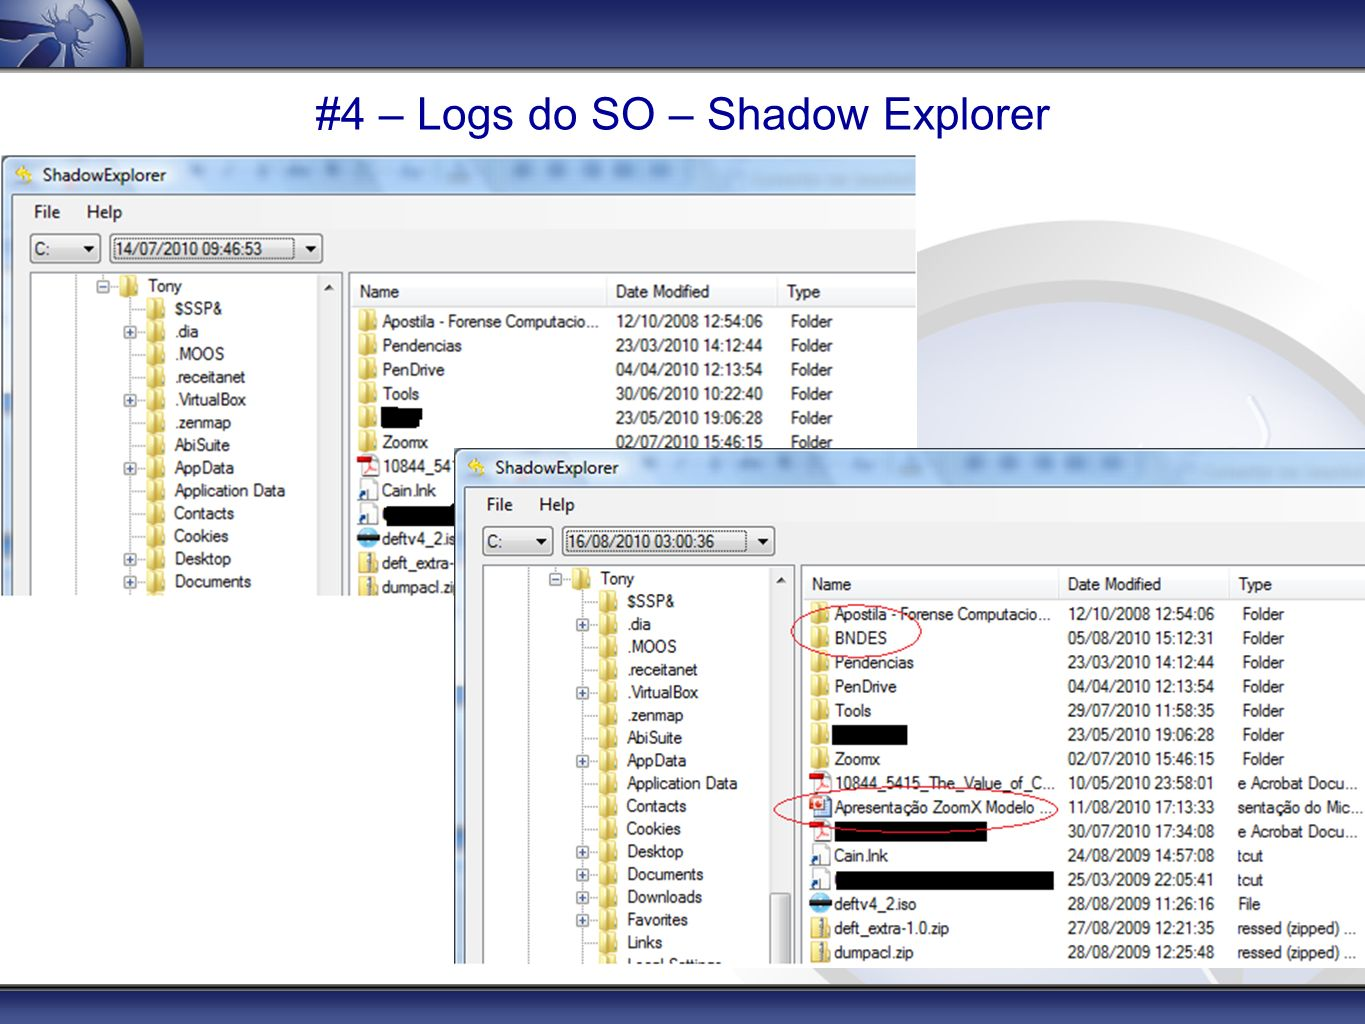 #4 – Logs do SO – Shadow Explorer